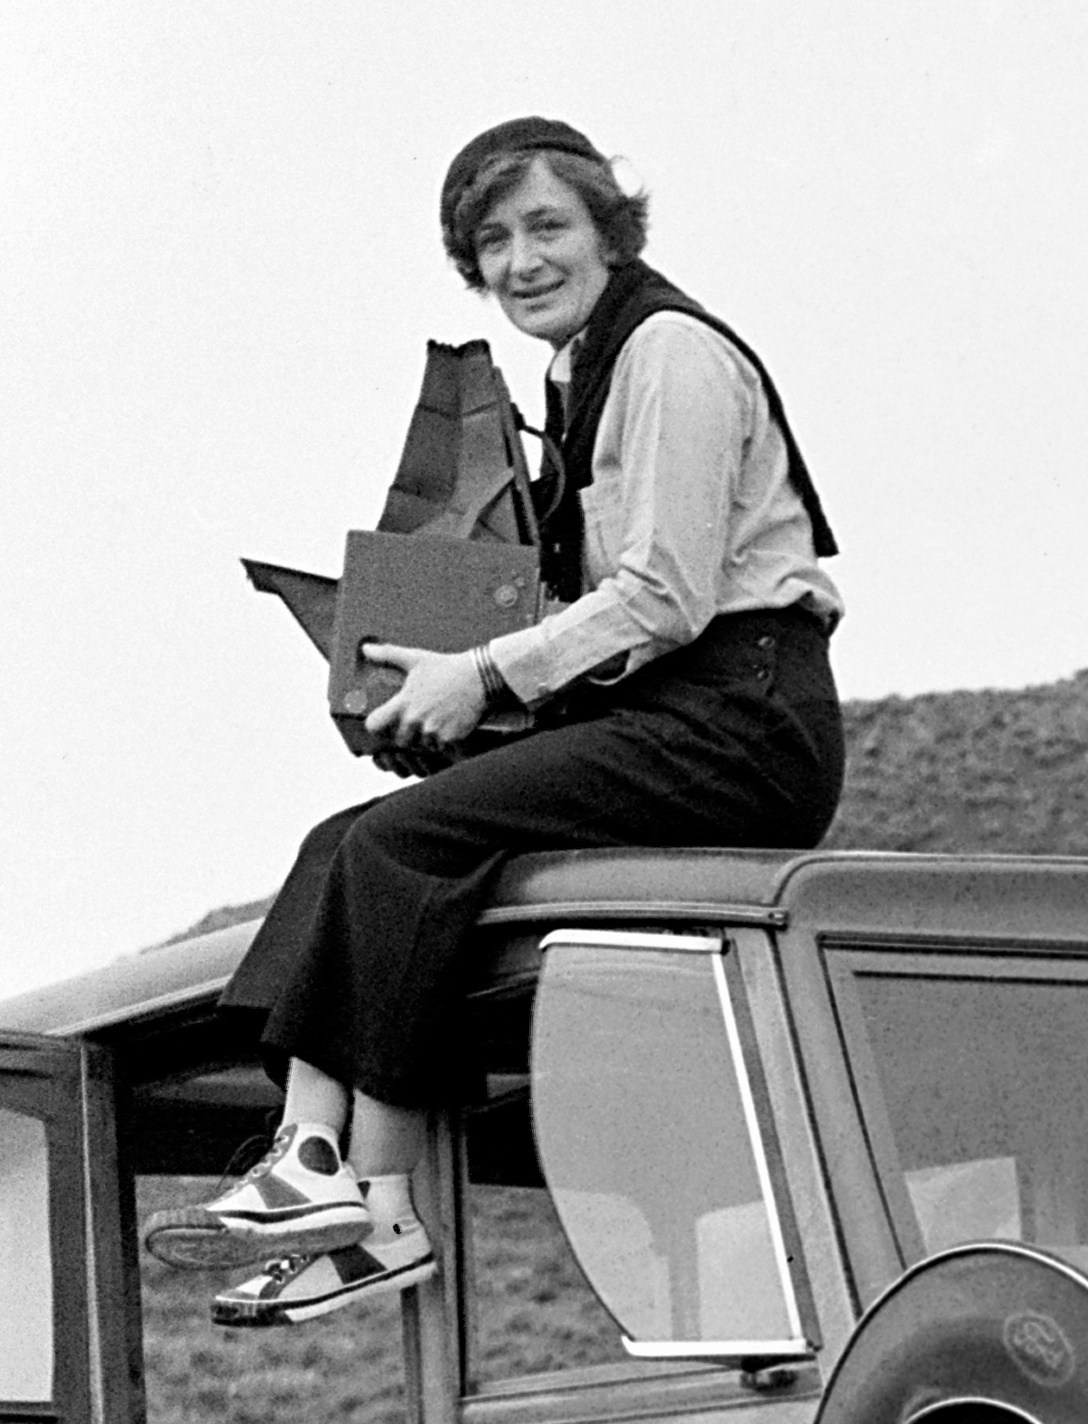 Image of Dorothea Lange from Wikidata